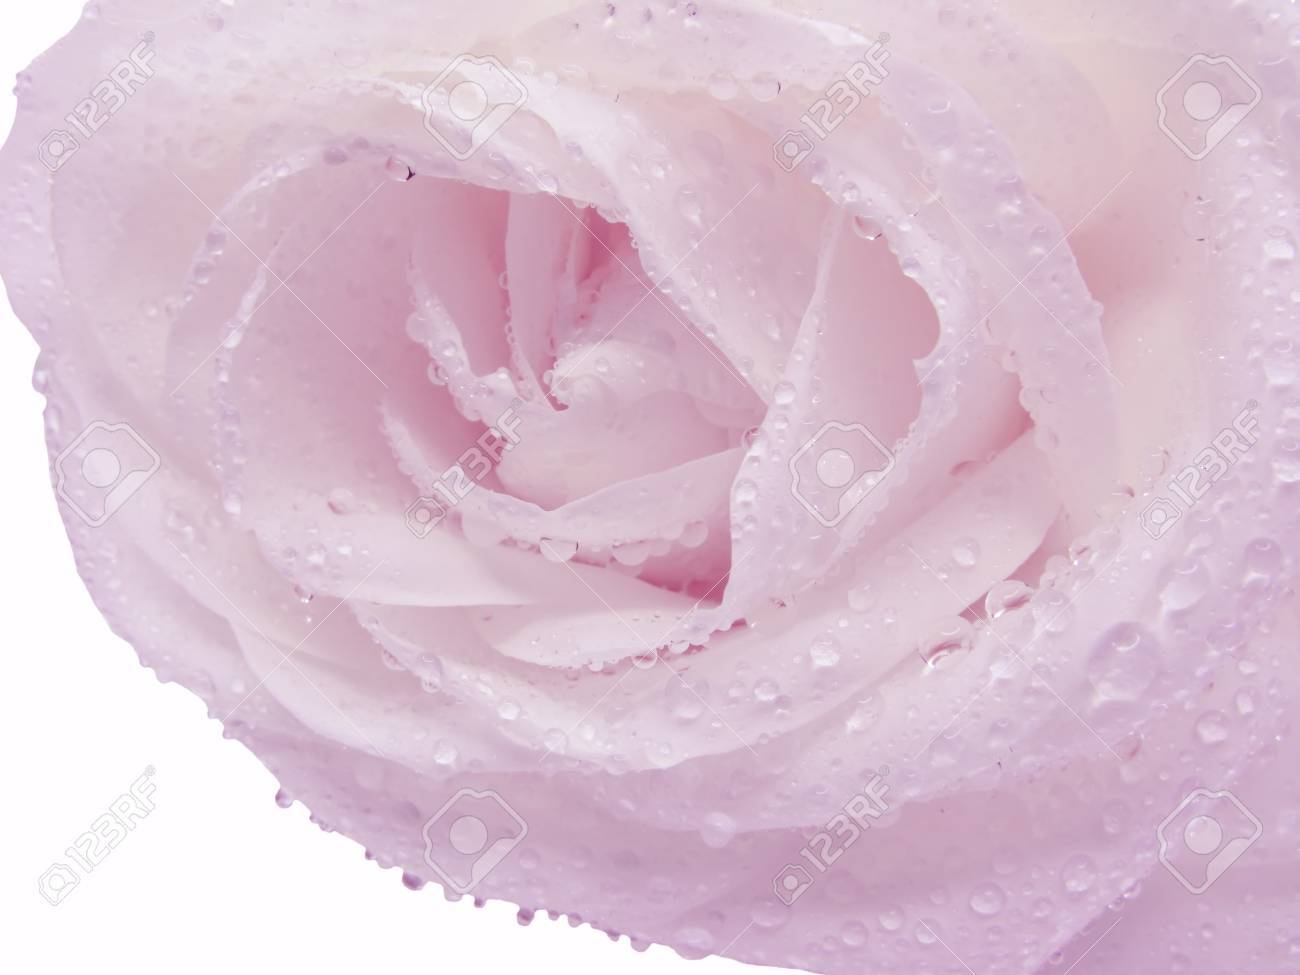 Pink Rose With Water Drops And Stem